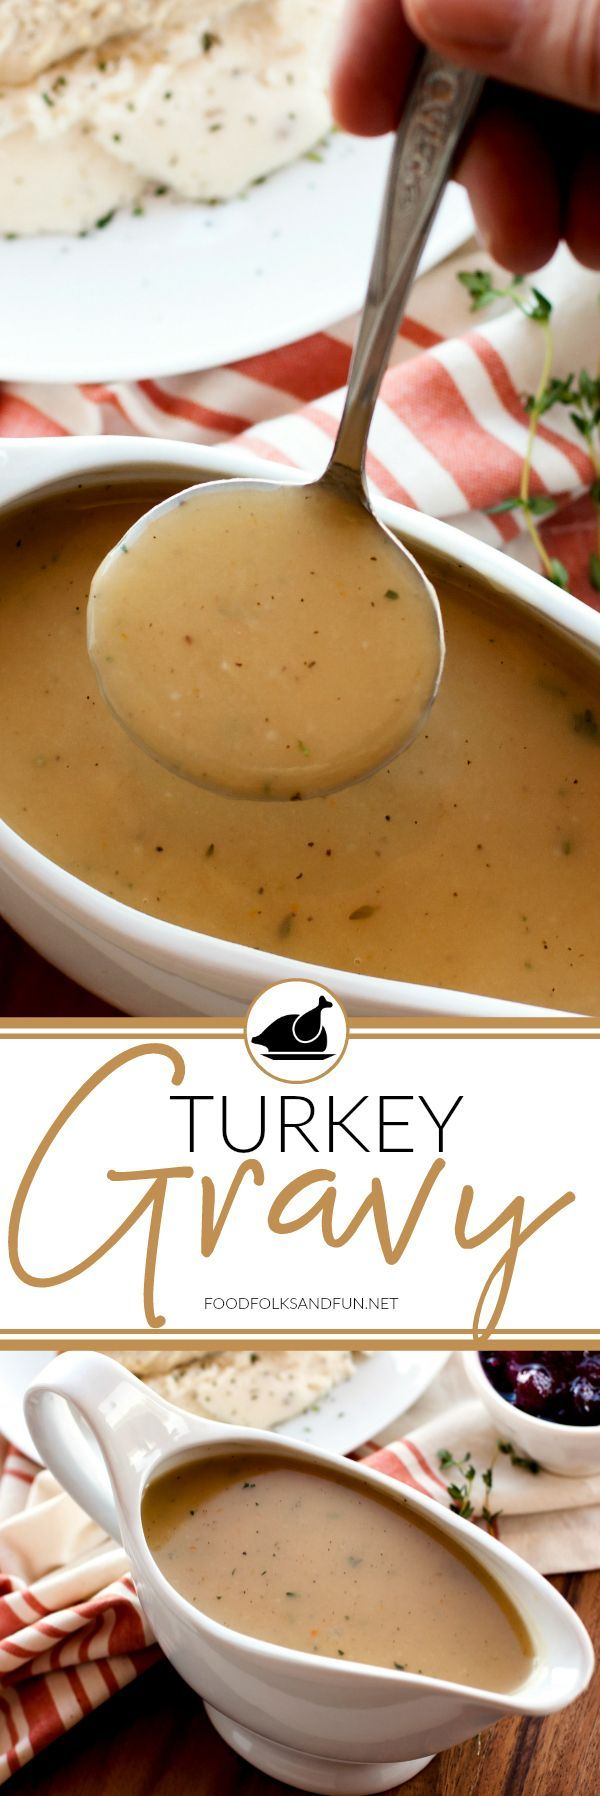 No Thanksgiving is complete without delicious, homemade Turkey Gravy. This recipe includes instructions to make turkey gravy with or without pan drippings. #ad